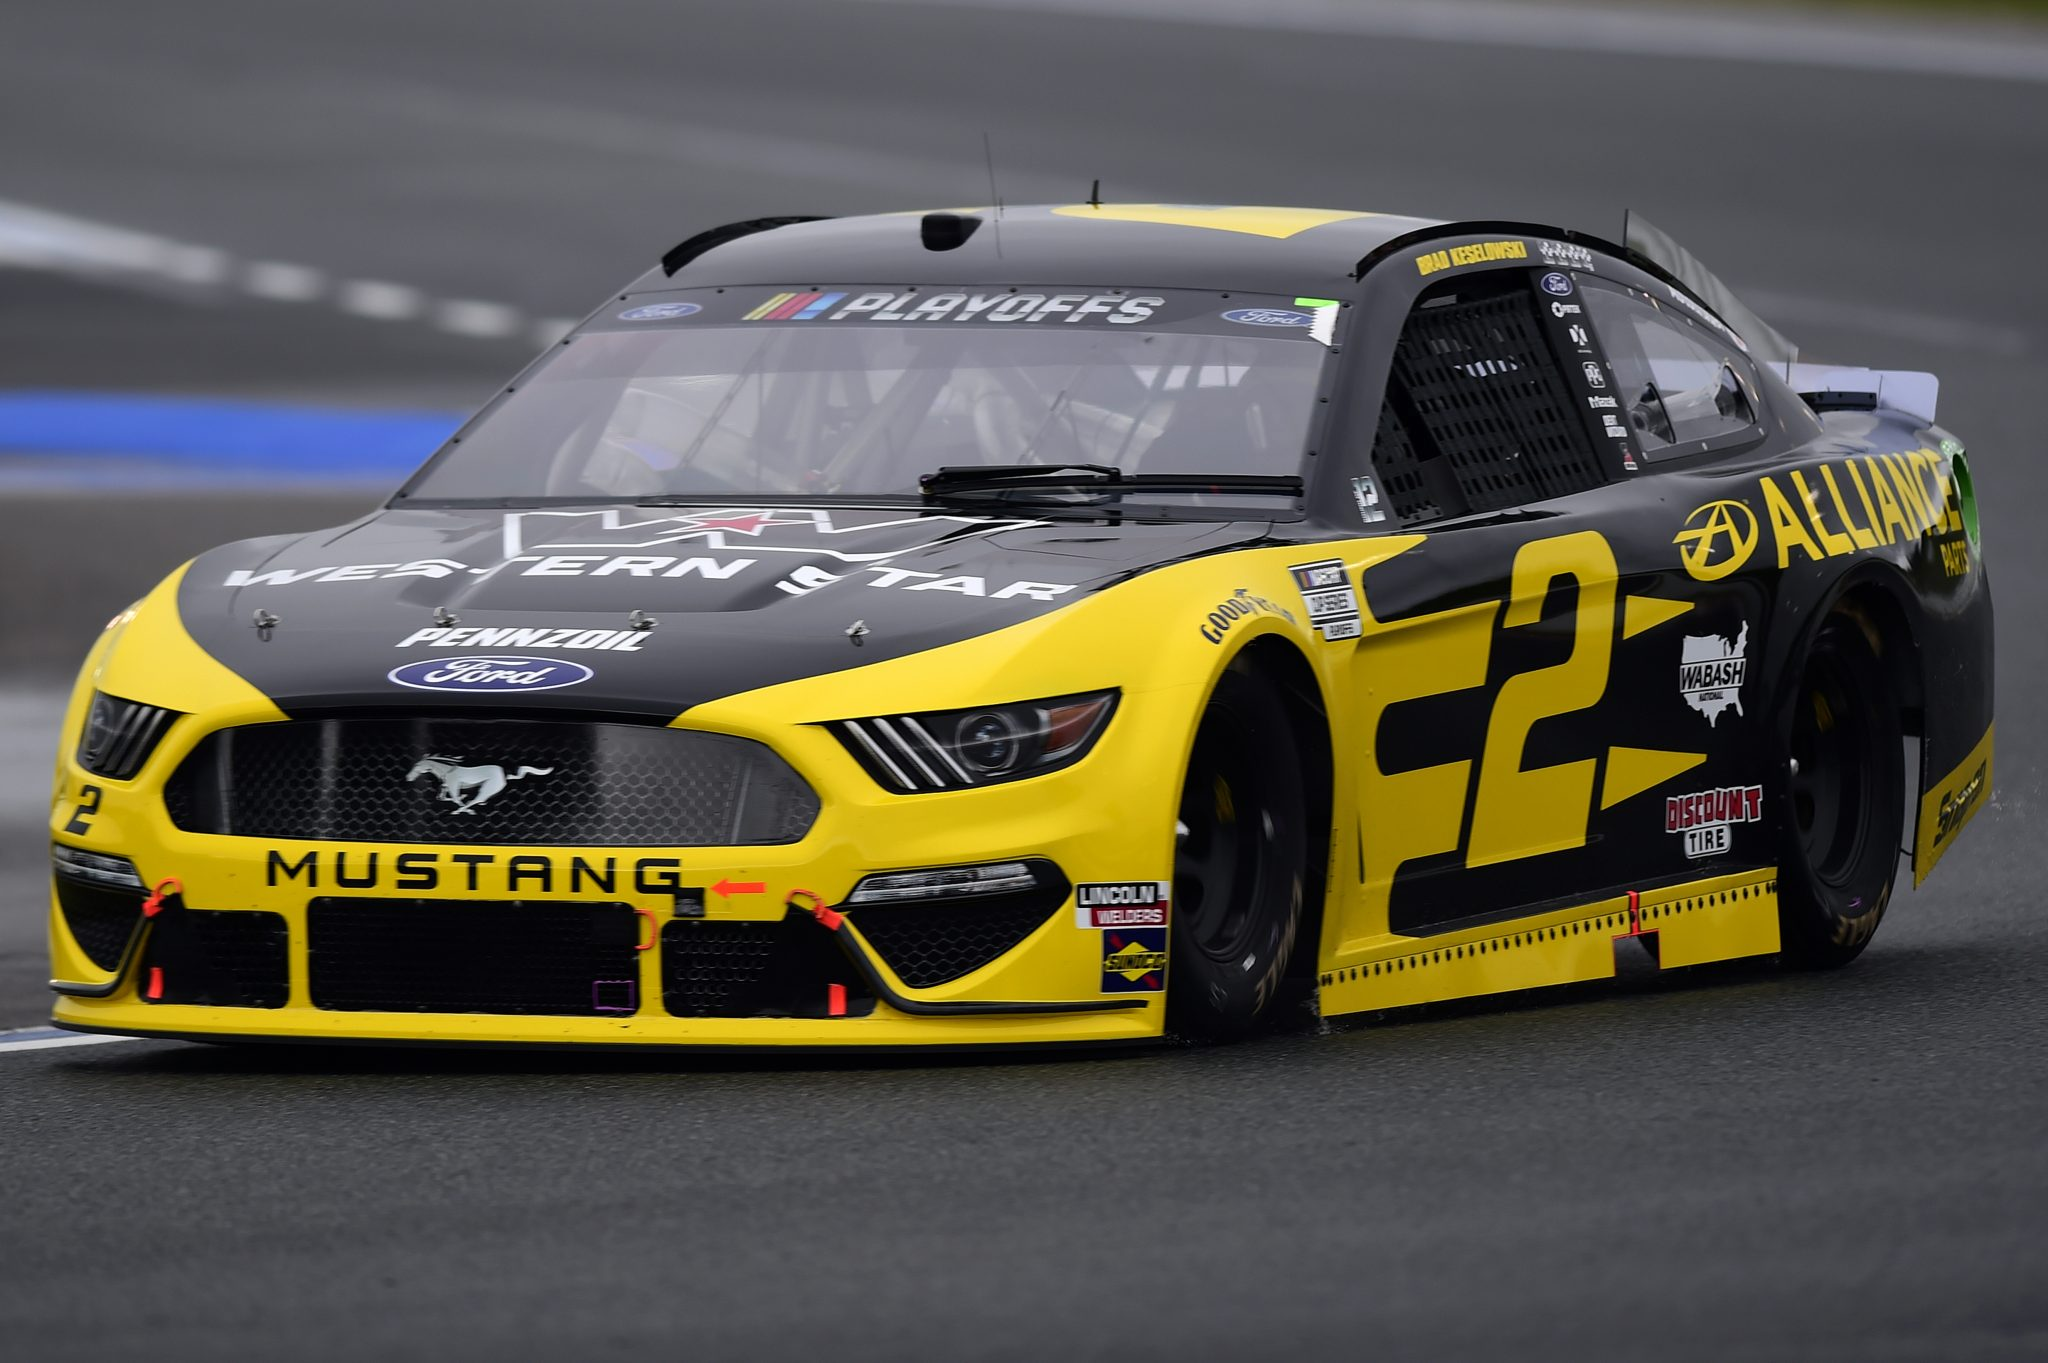 CONCORD, NORTH CAROLINA - OCTOBER 11: Brad Keselowski, driver of the #2 Western Star/Alliance Parts Ford, drives during the NASCAR Cup Series Bank of America ROVAL 400 at Charlotte Motor Speedway on October 11, 2020 in Concord, North Carolina. (Photo by Jared C. Tilton/Getty Images) | Getty Images